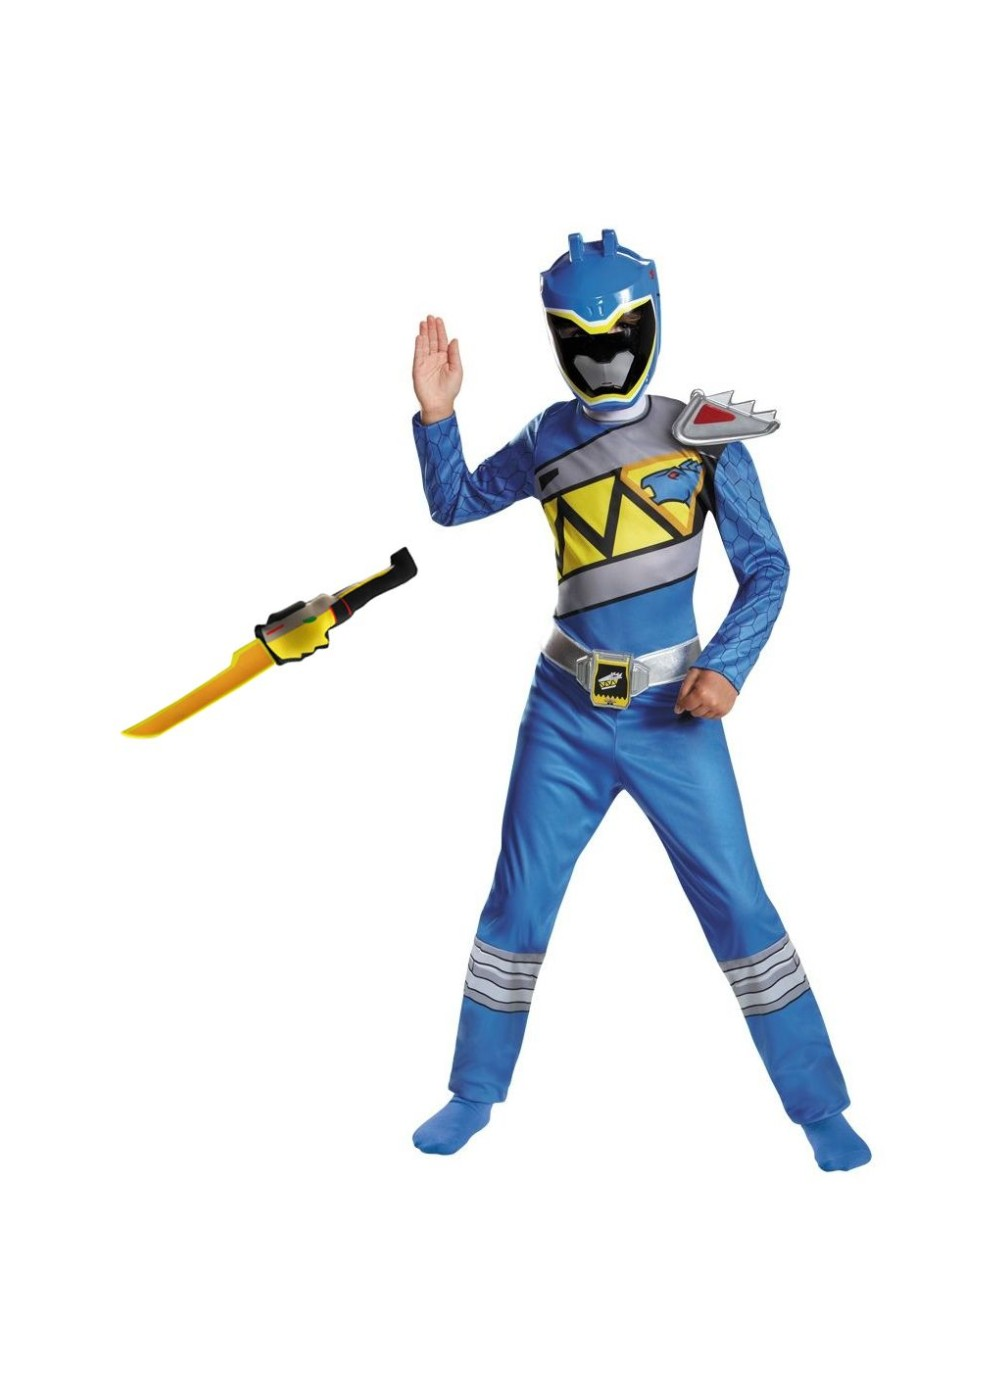 Blue Power Ranger Dino Charge Boys Costume And Toy Sword